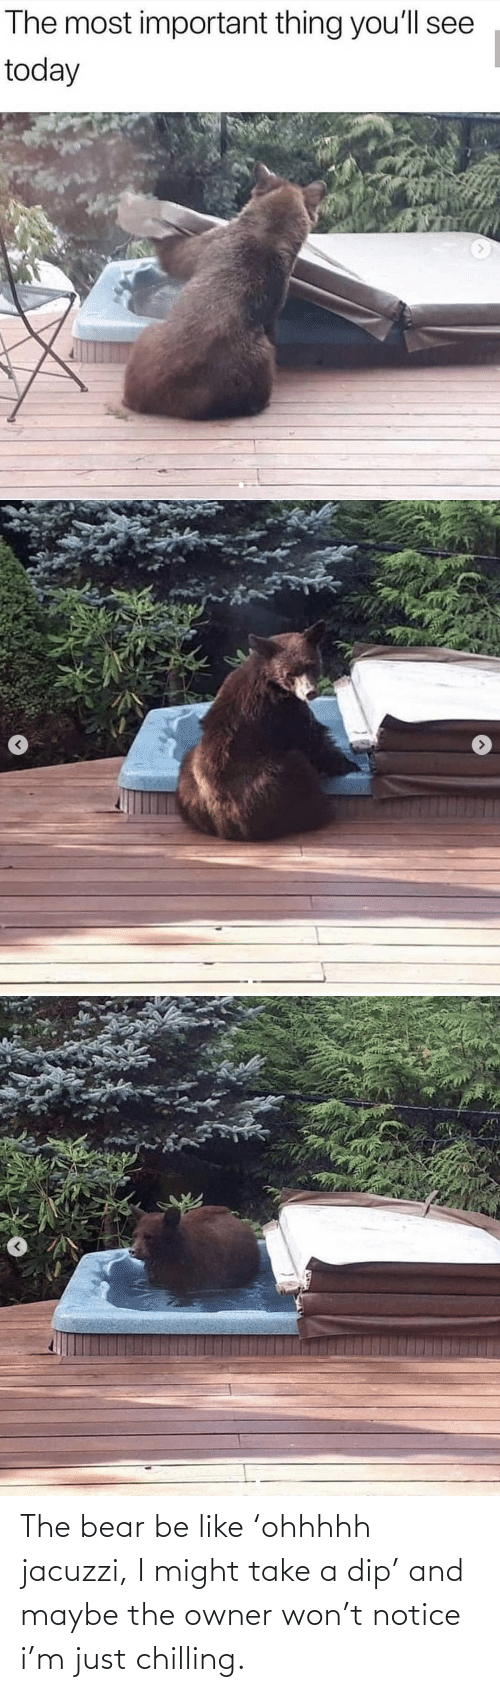 Be Like, Bear, and Jacuzzi: The bear be like 'ohhhhh jacuzzi, I might take a dip' and maybe the owner won't notice i'm just chilling.